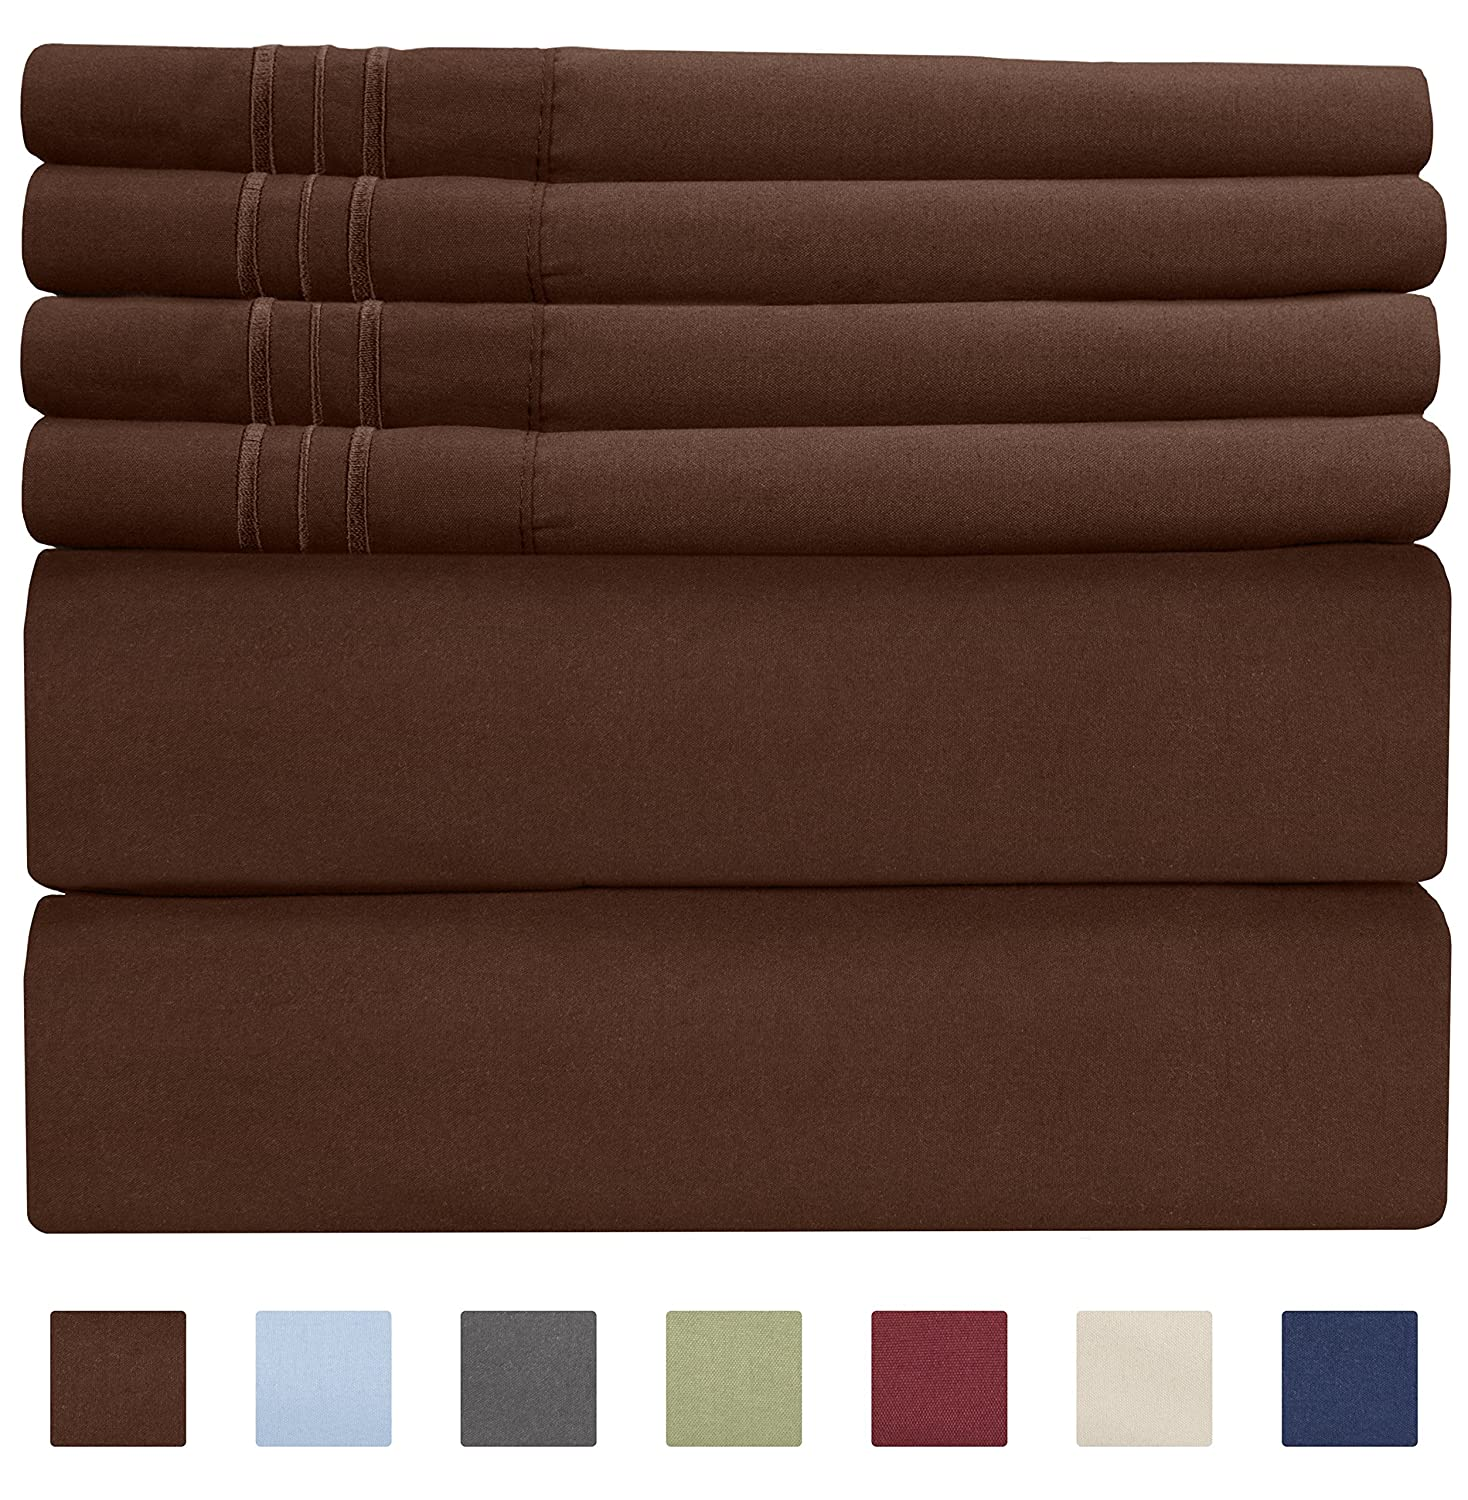 Queen Size Sheet Set - 6 Piece Set - Hotel Luxury Bed Sheets - Extra Soft - Deep Pockets - Easy Fit - Breathable & Cooling Sheets - Wrinkle Free - Chocolate - Brown Bed Sheets - Queens Sheets - 6 PC